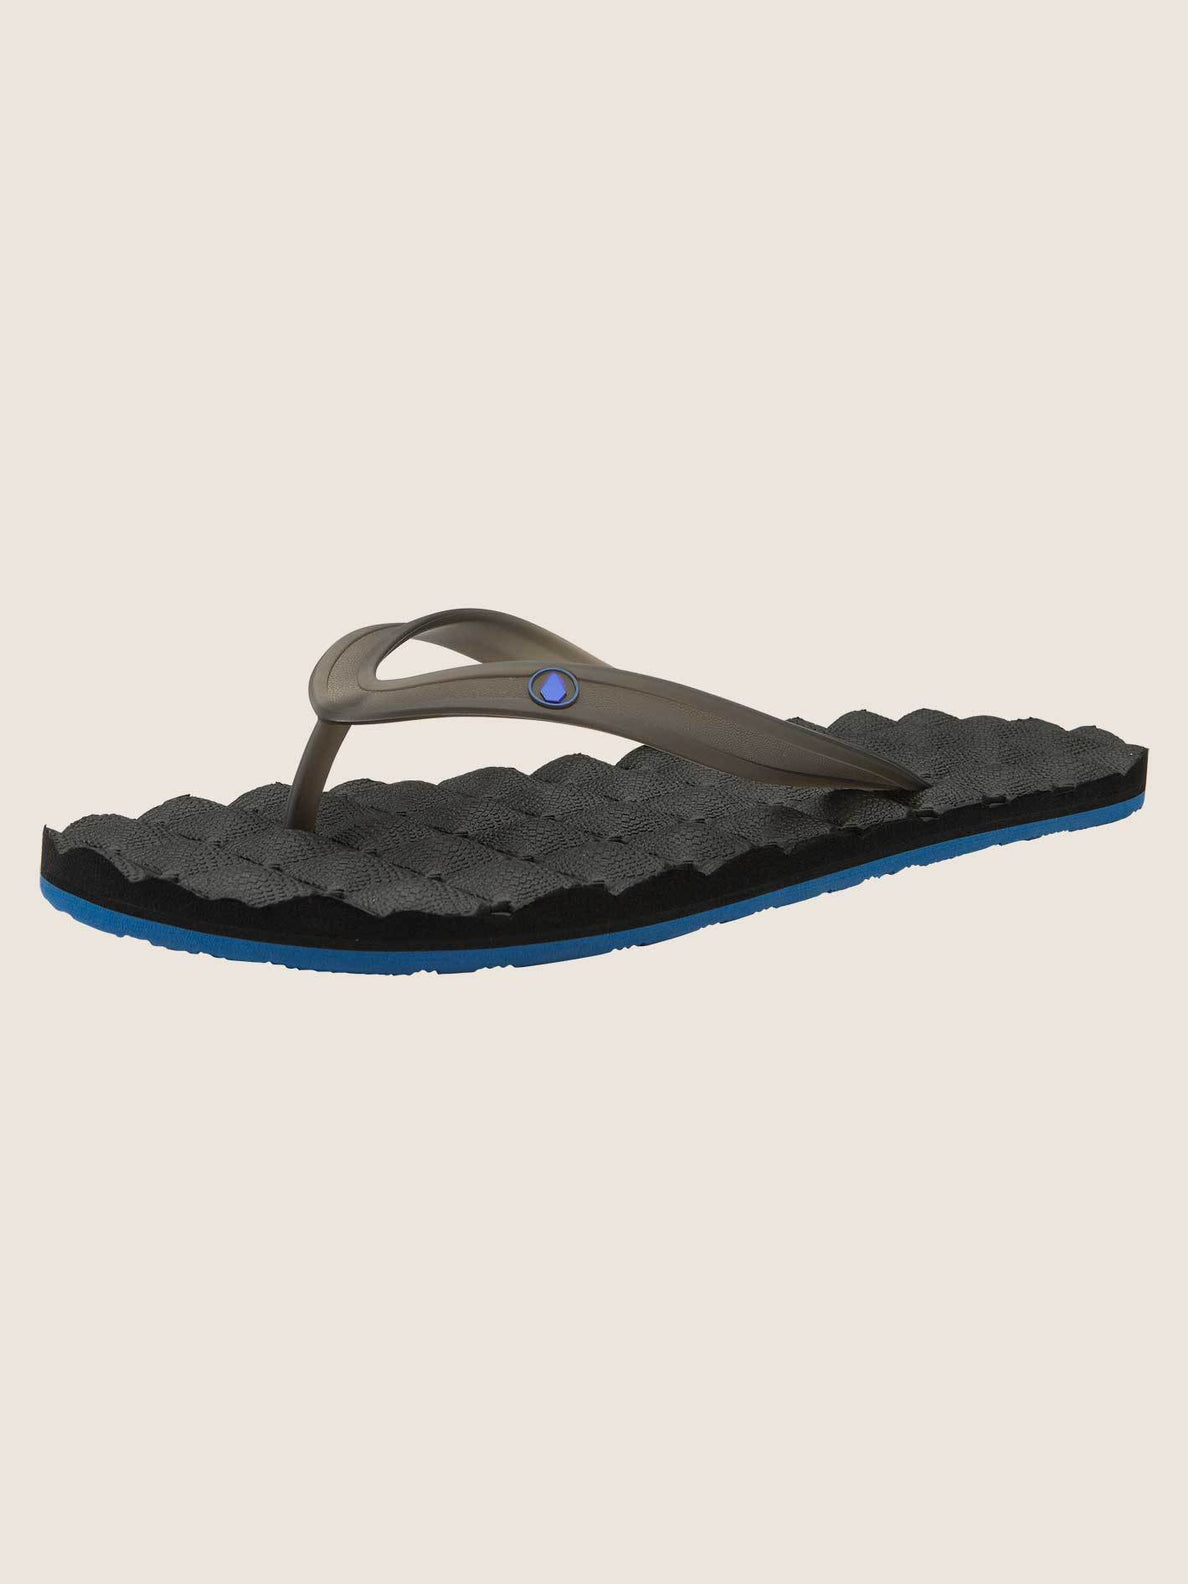 Recliner Rubber 2 Sandals In Blue Black, Back View